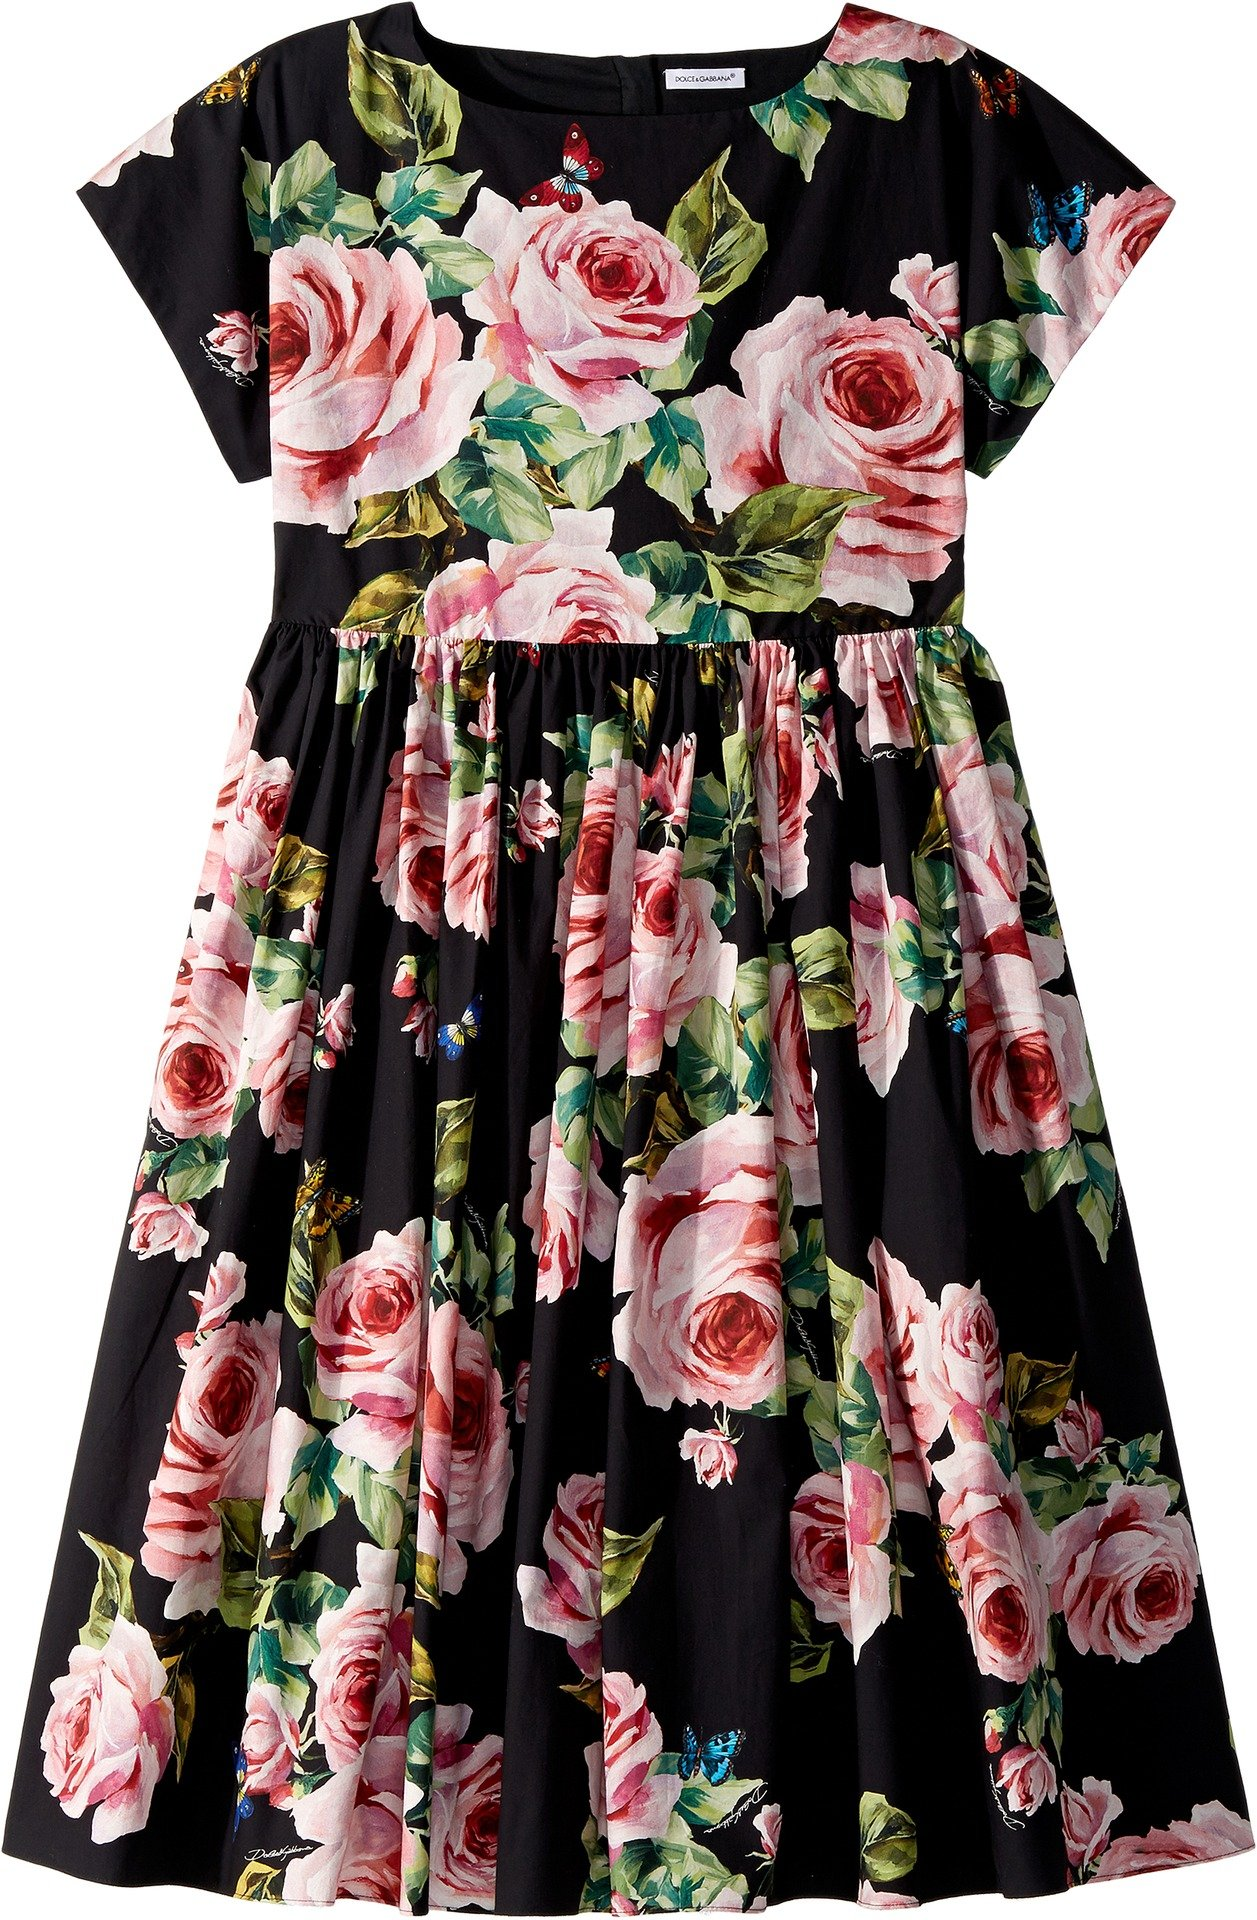 Dolce & Gabbana Kids Girl's Sleeveless Dress (Big Kids) Black Print 10 by Dolce & Gabbana (Image #1)